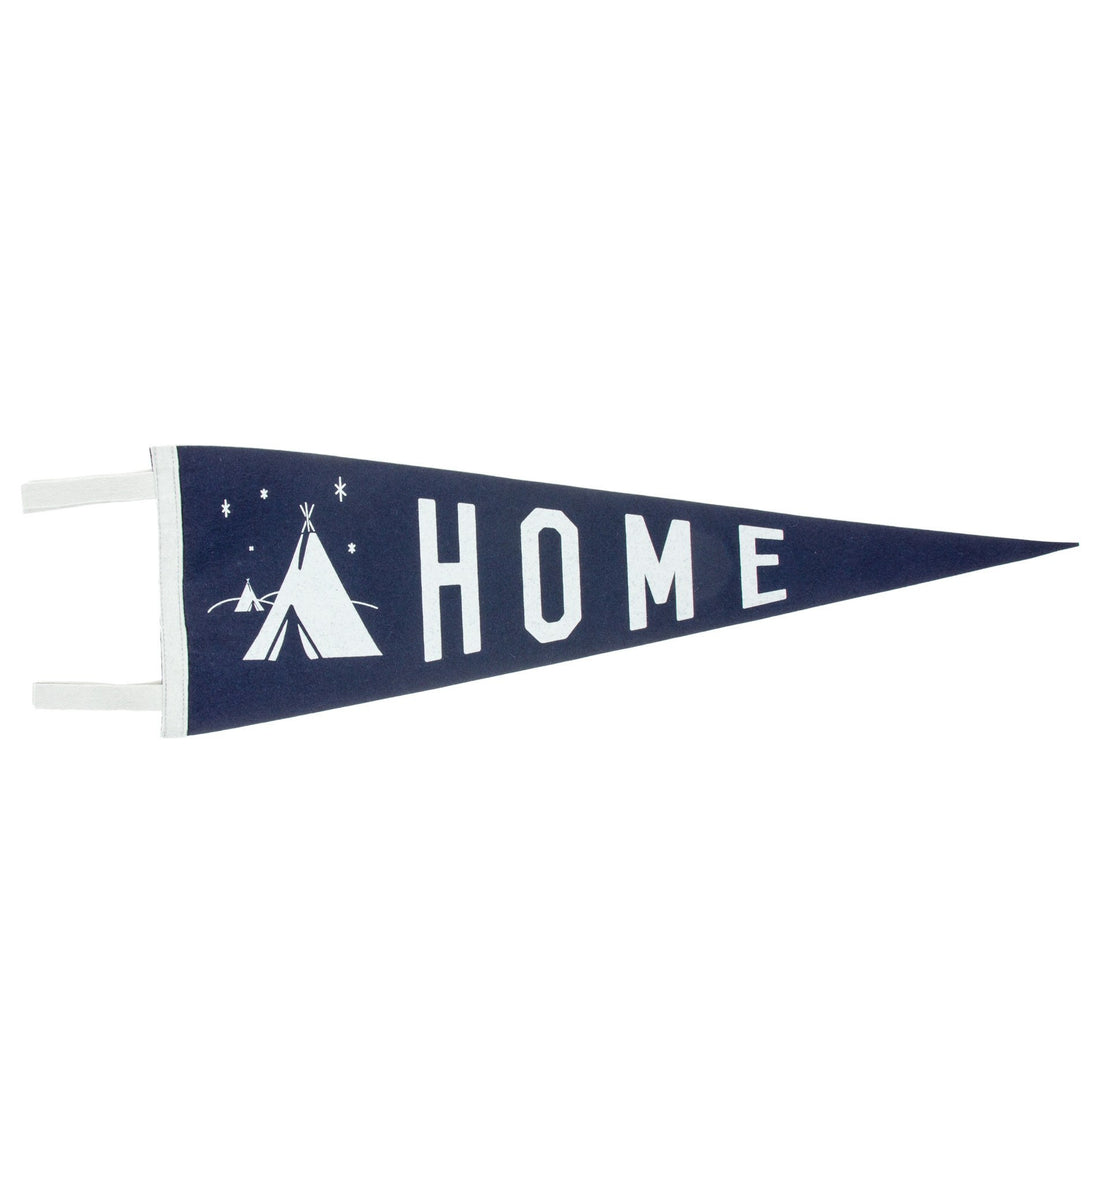 Oxford Pennant - Home - Houseware - Iron and Resin